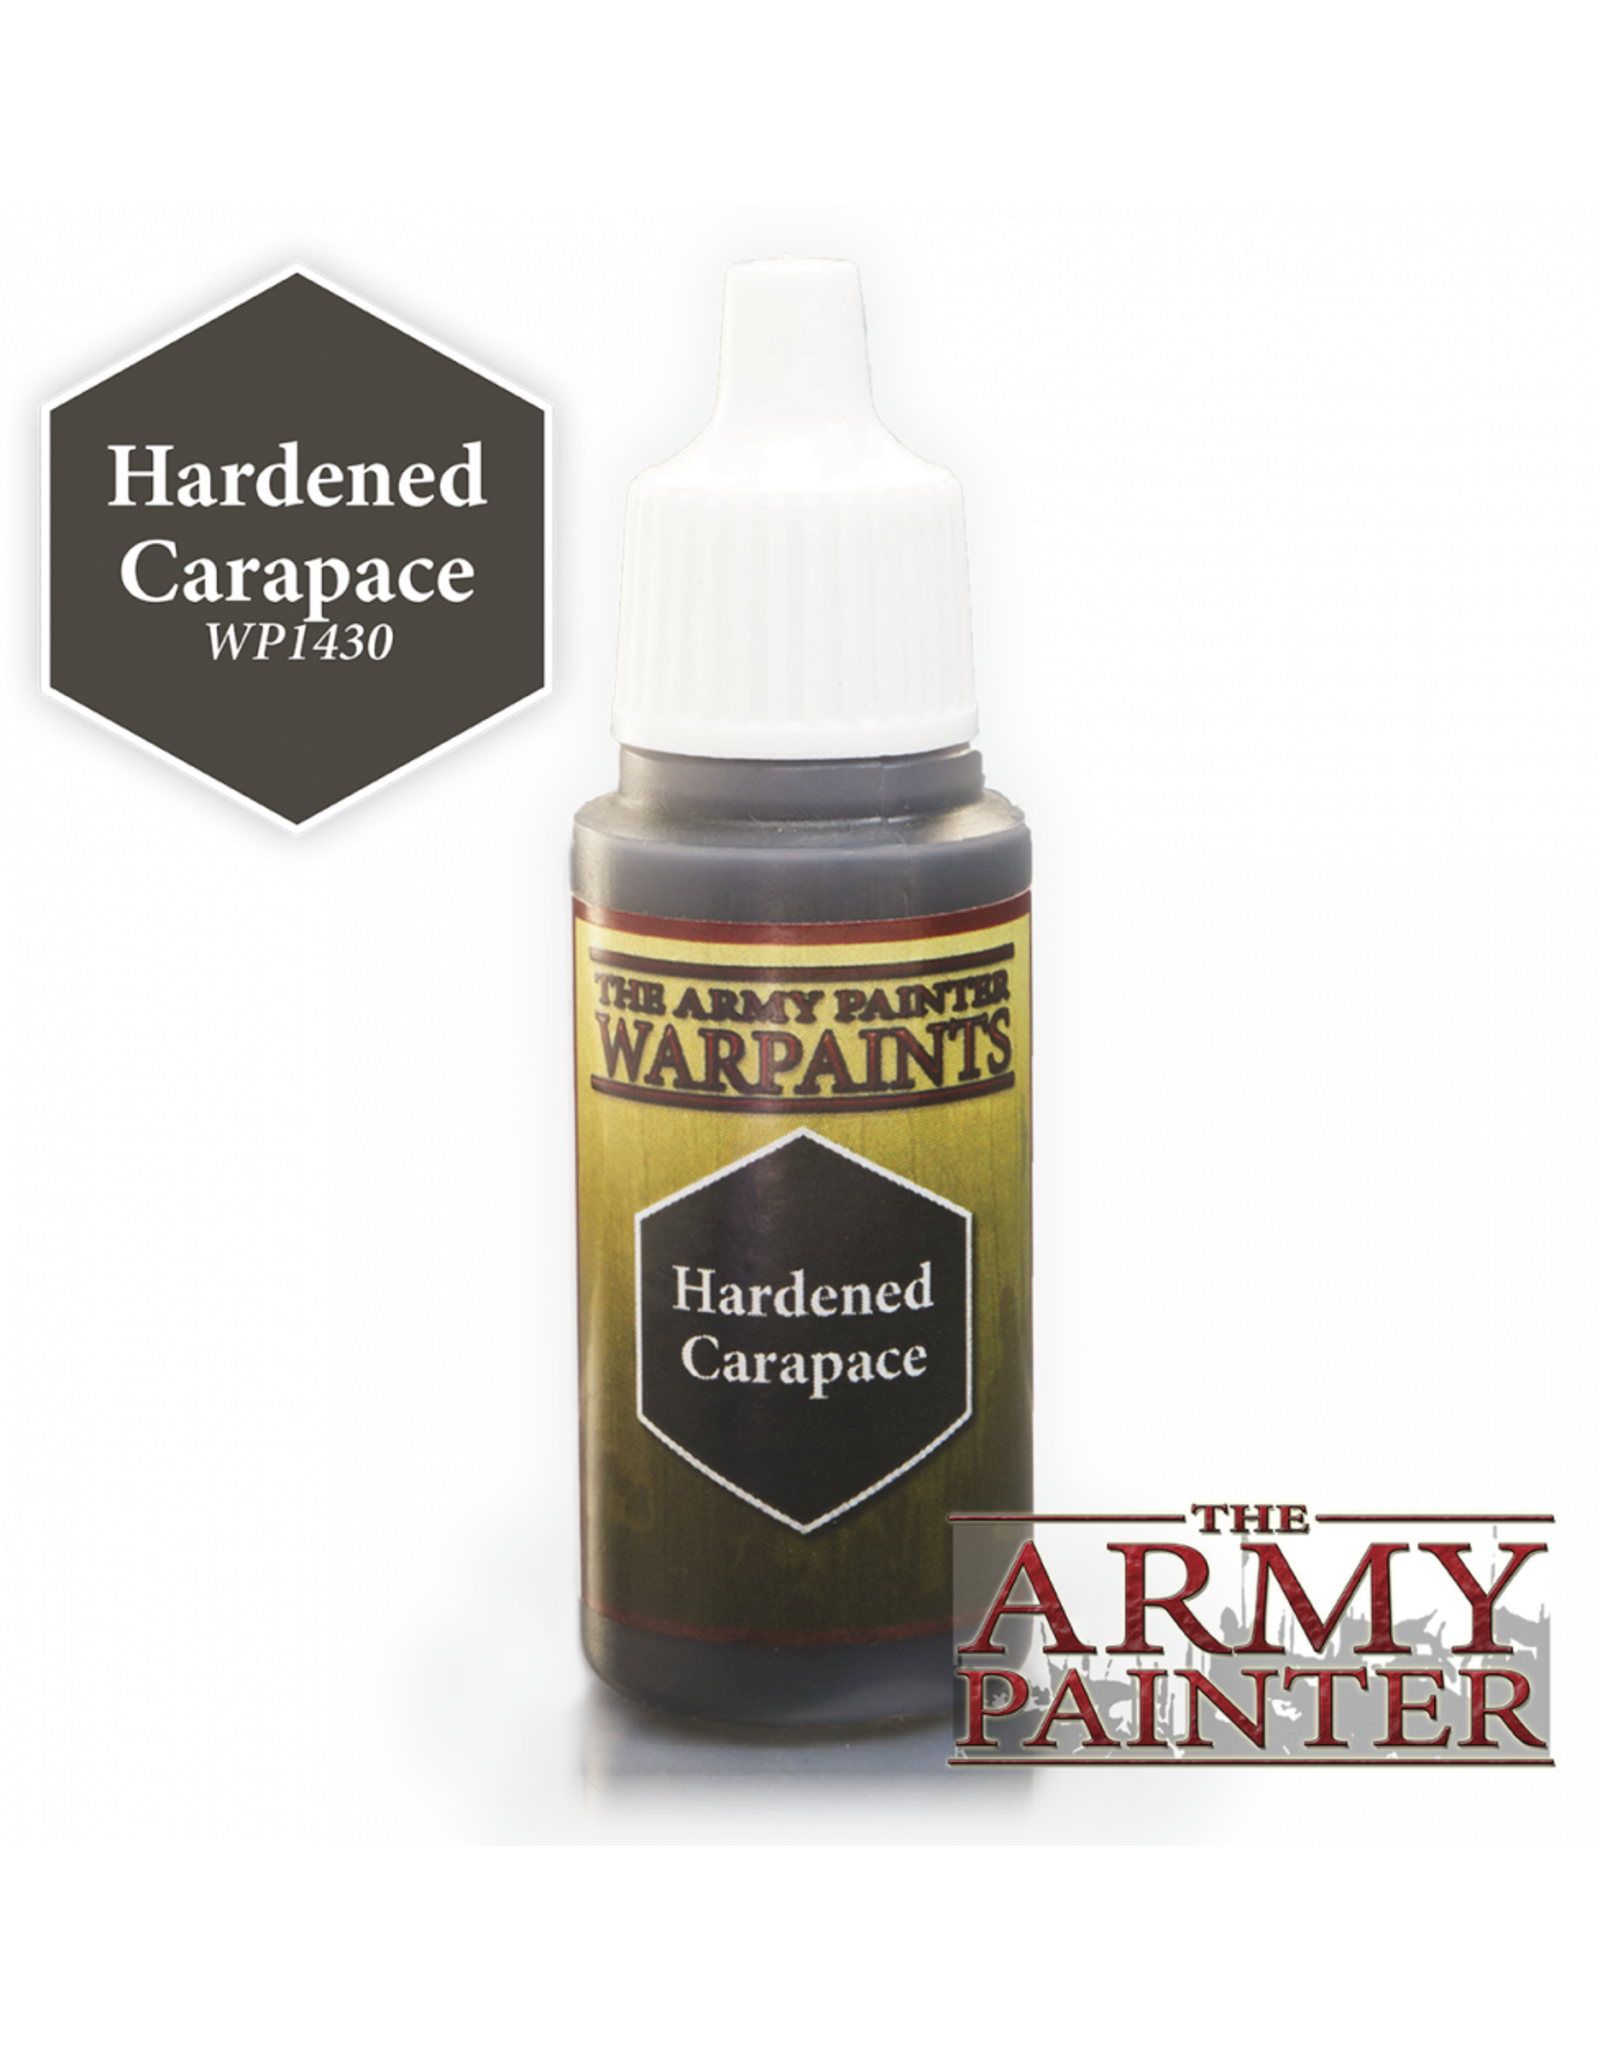 THE ARMY PAINTER ARMY PAINTER WARPAINTS HARDENED CARAPACE